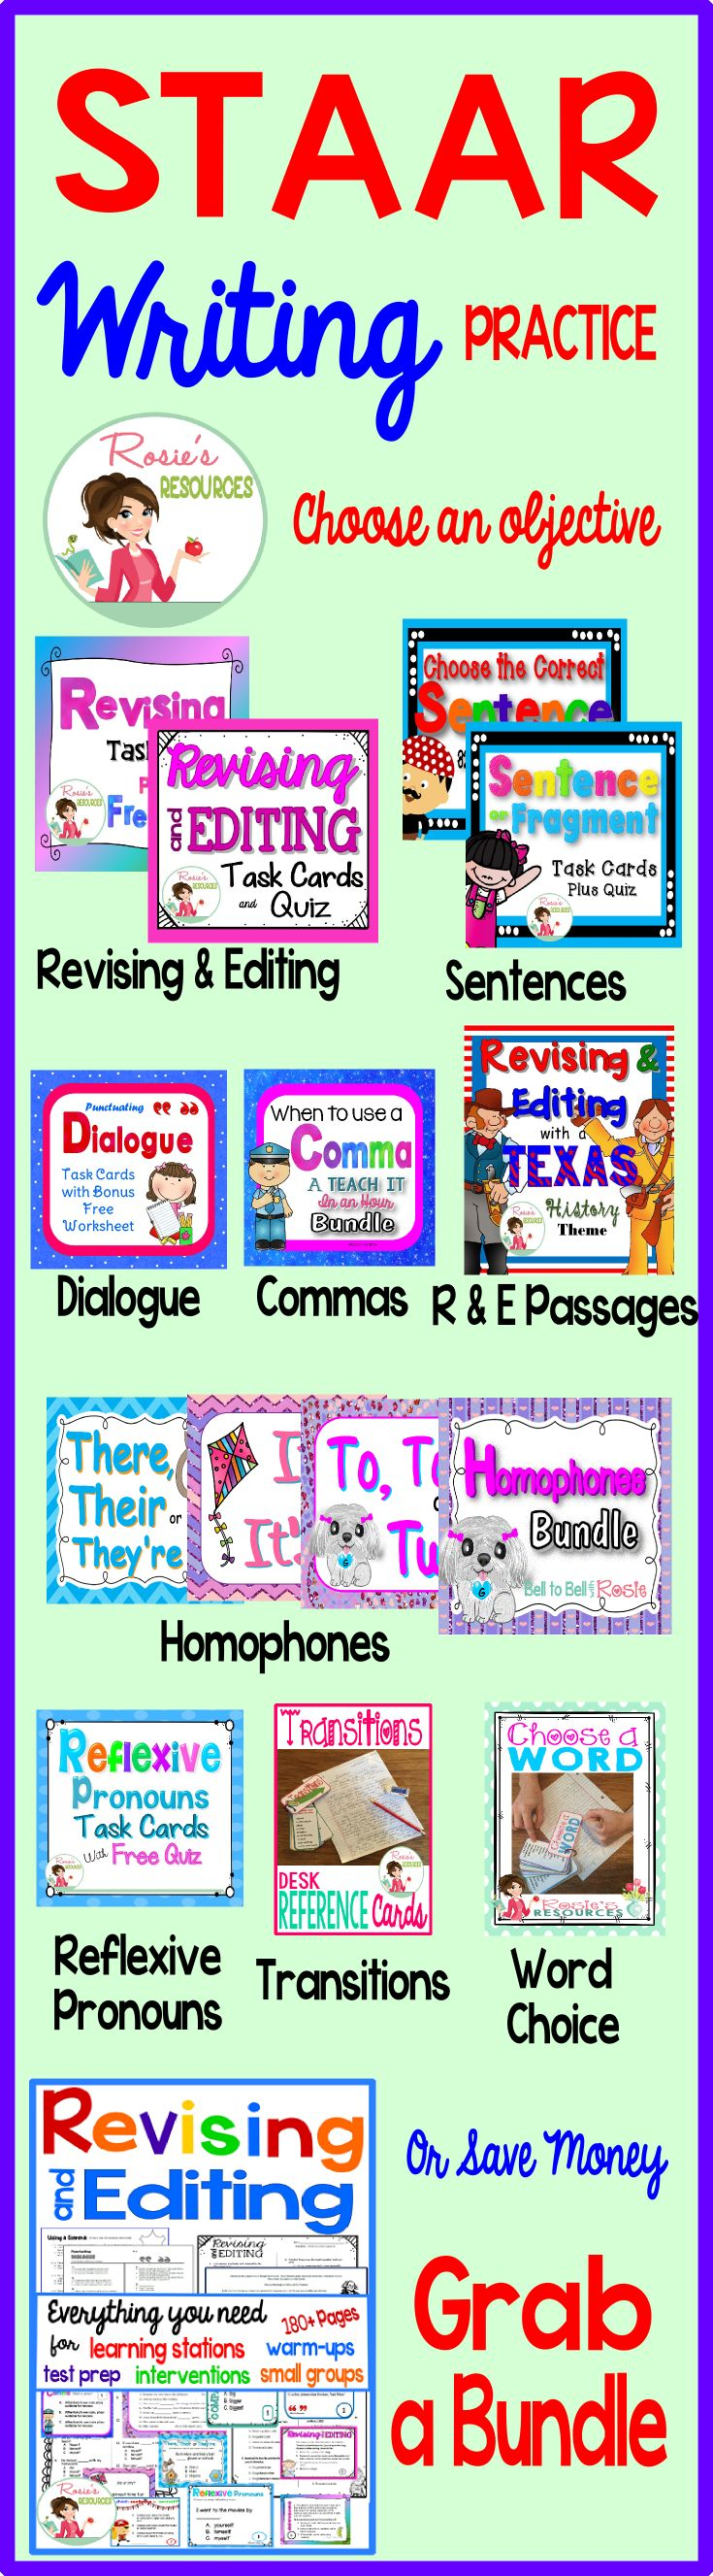 Need practice for the STAAR writing test? Each resource targets a specific revising and editing skill. Need more passages? Try our Texas History or Holiday revising and editing passages. Grab a bundle to save time and money!